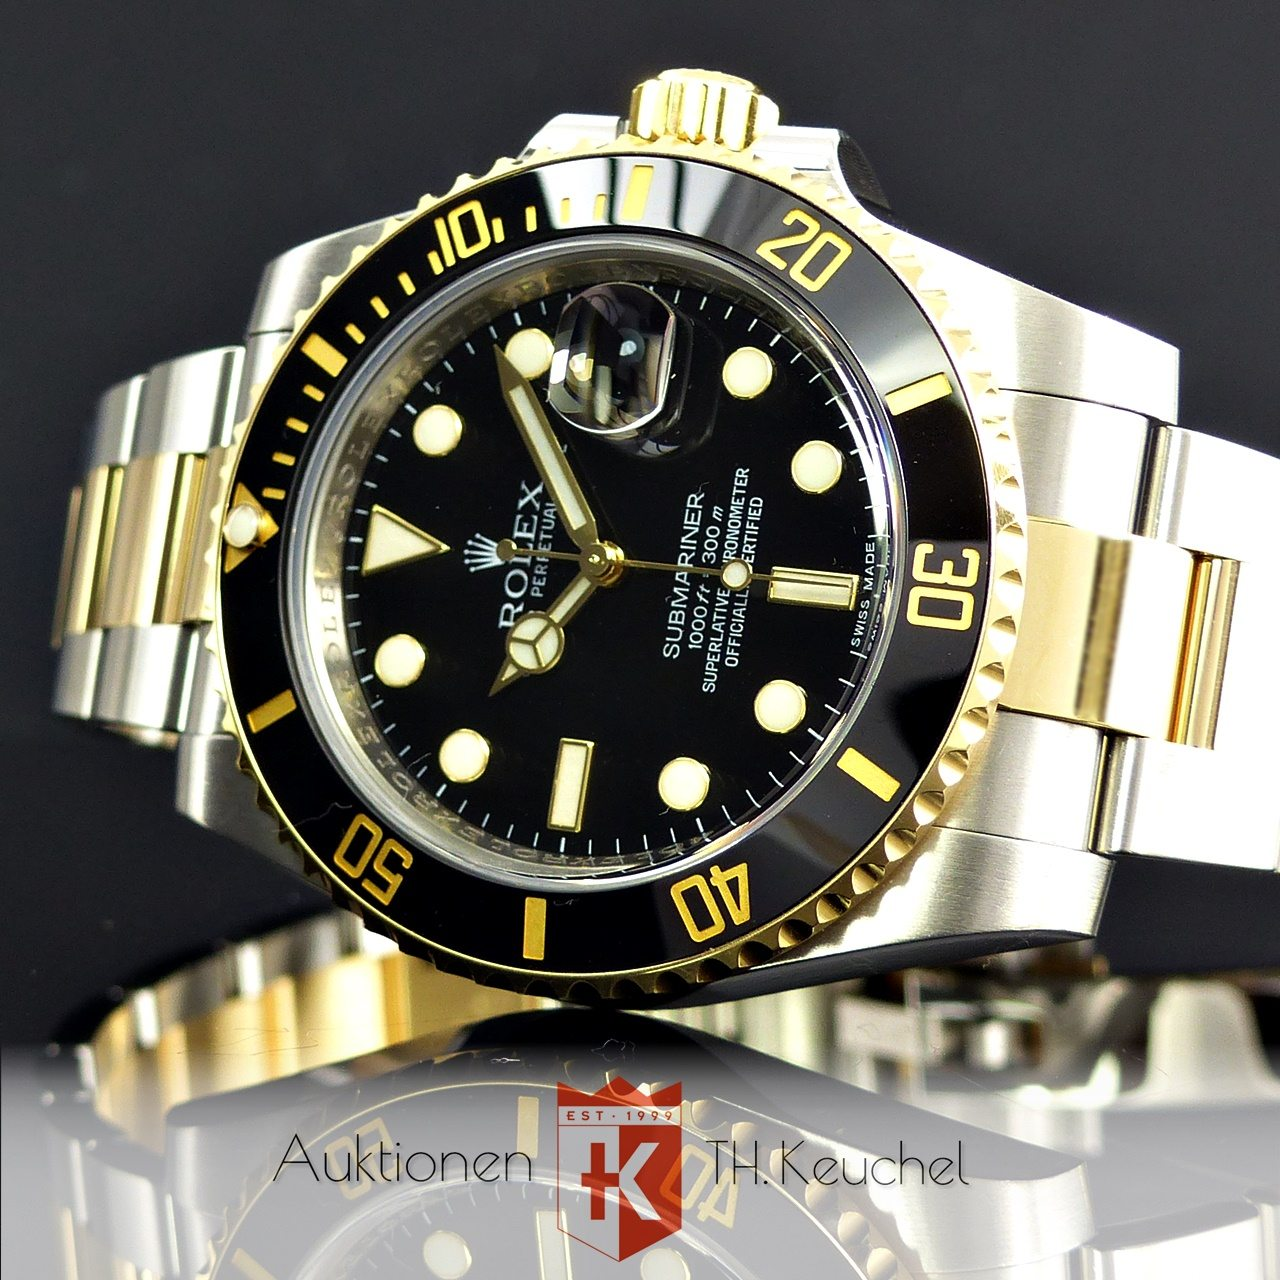 rolex submariner gold stahl ref 116613ln full set lc eu neuwertig 2010 auktionen th keuchel. Black Bedroom Furniture Sets. Home Design Ideas